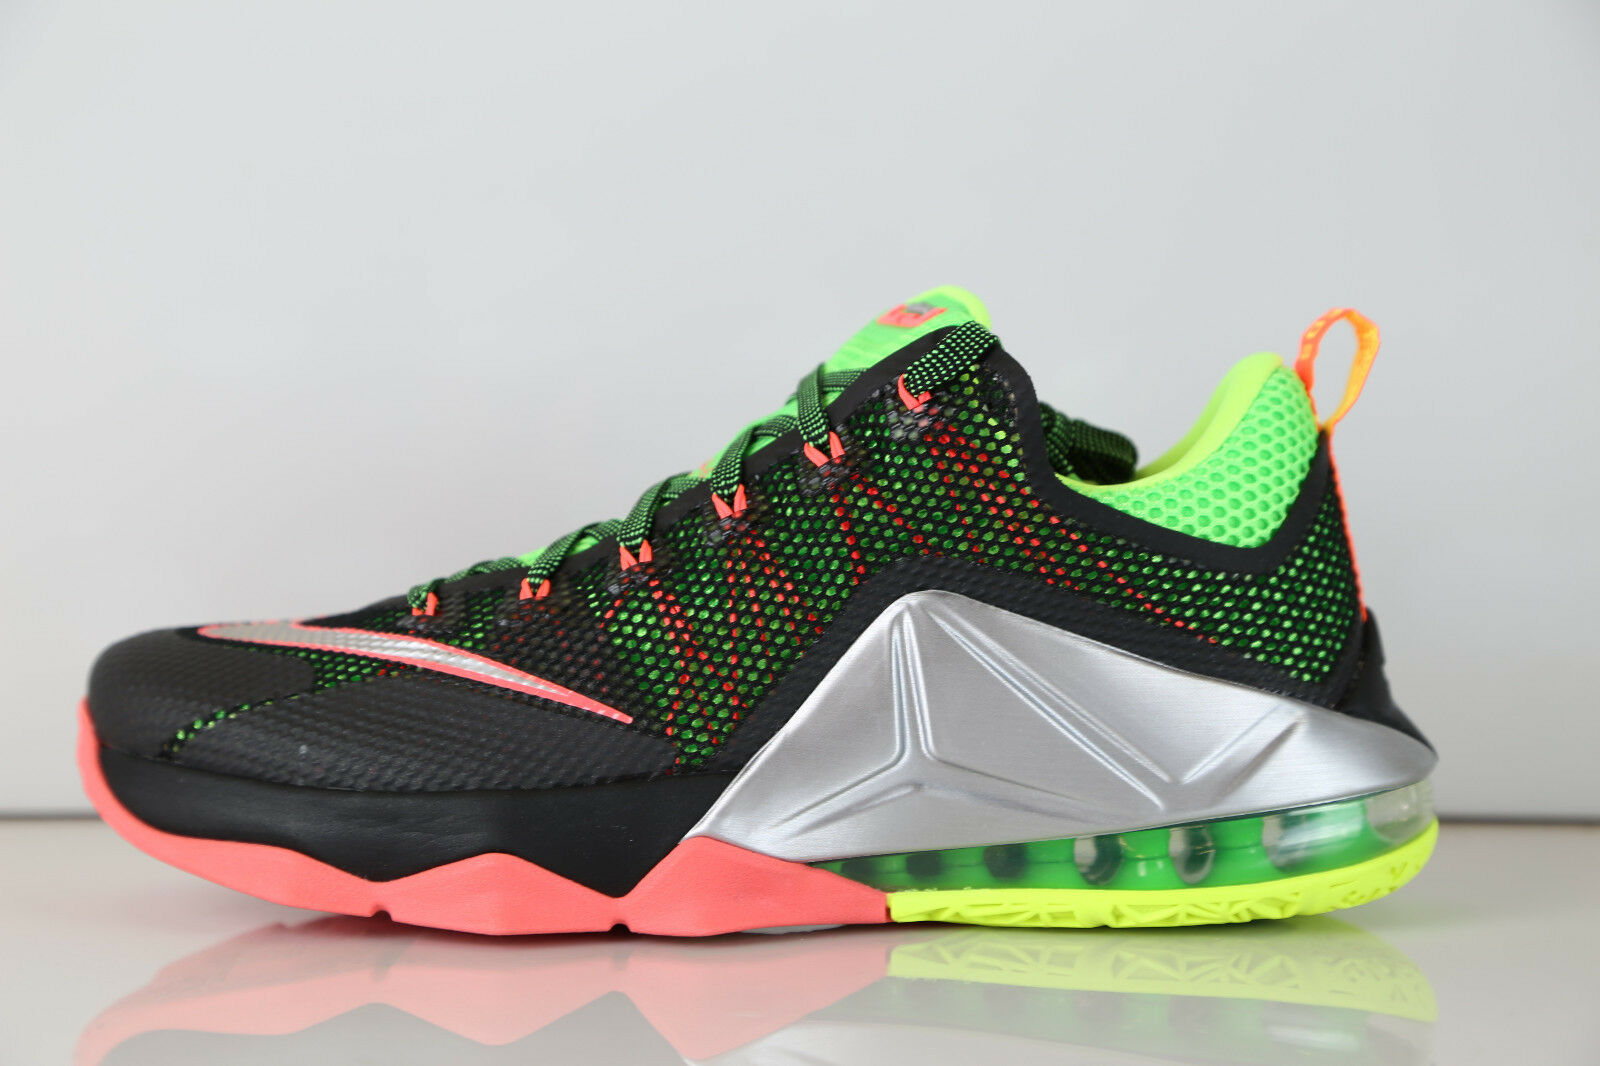 Nike Lebron XII Low Remix Nero Silver Bolt Hot Lava 724557-003 7-14 12 8 9 10